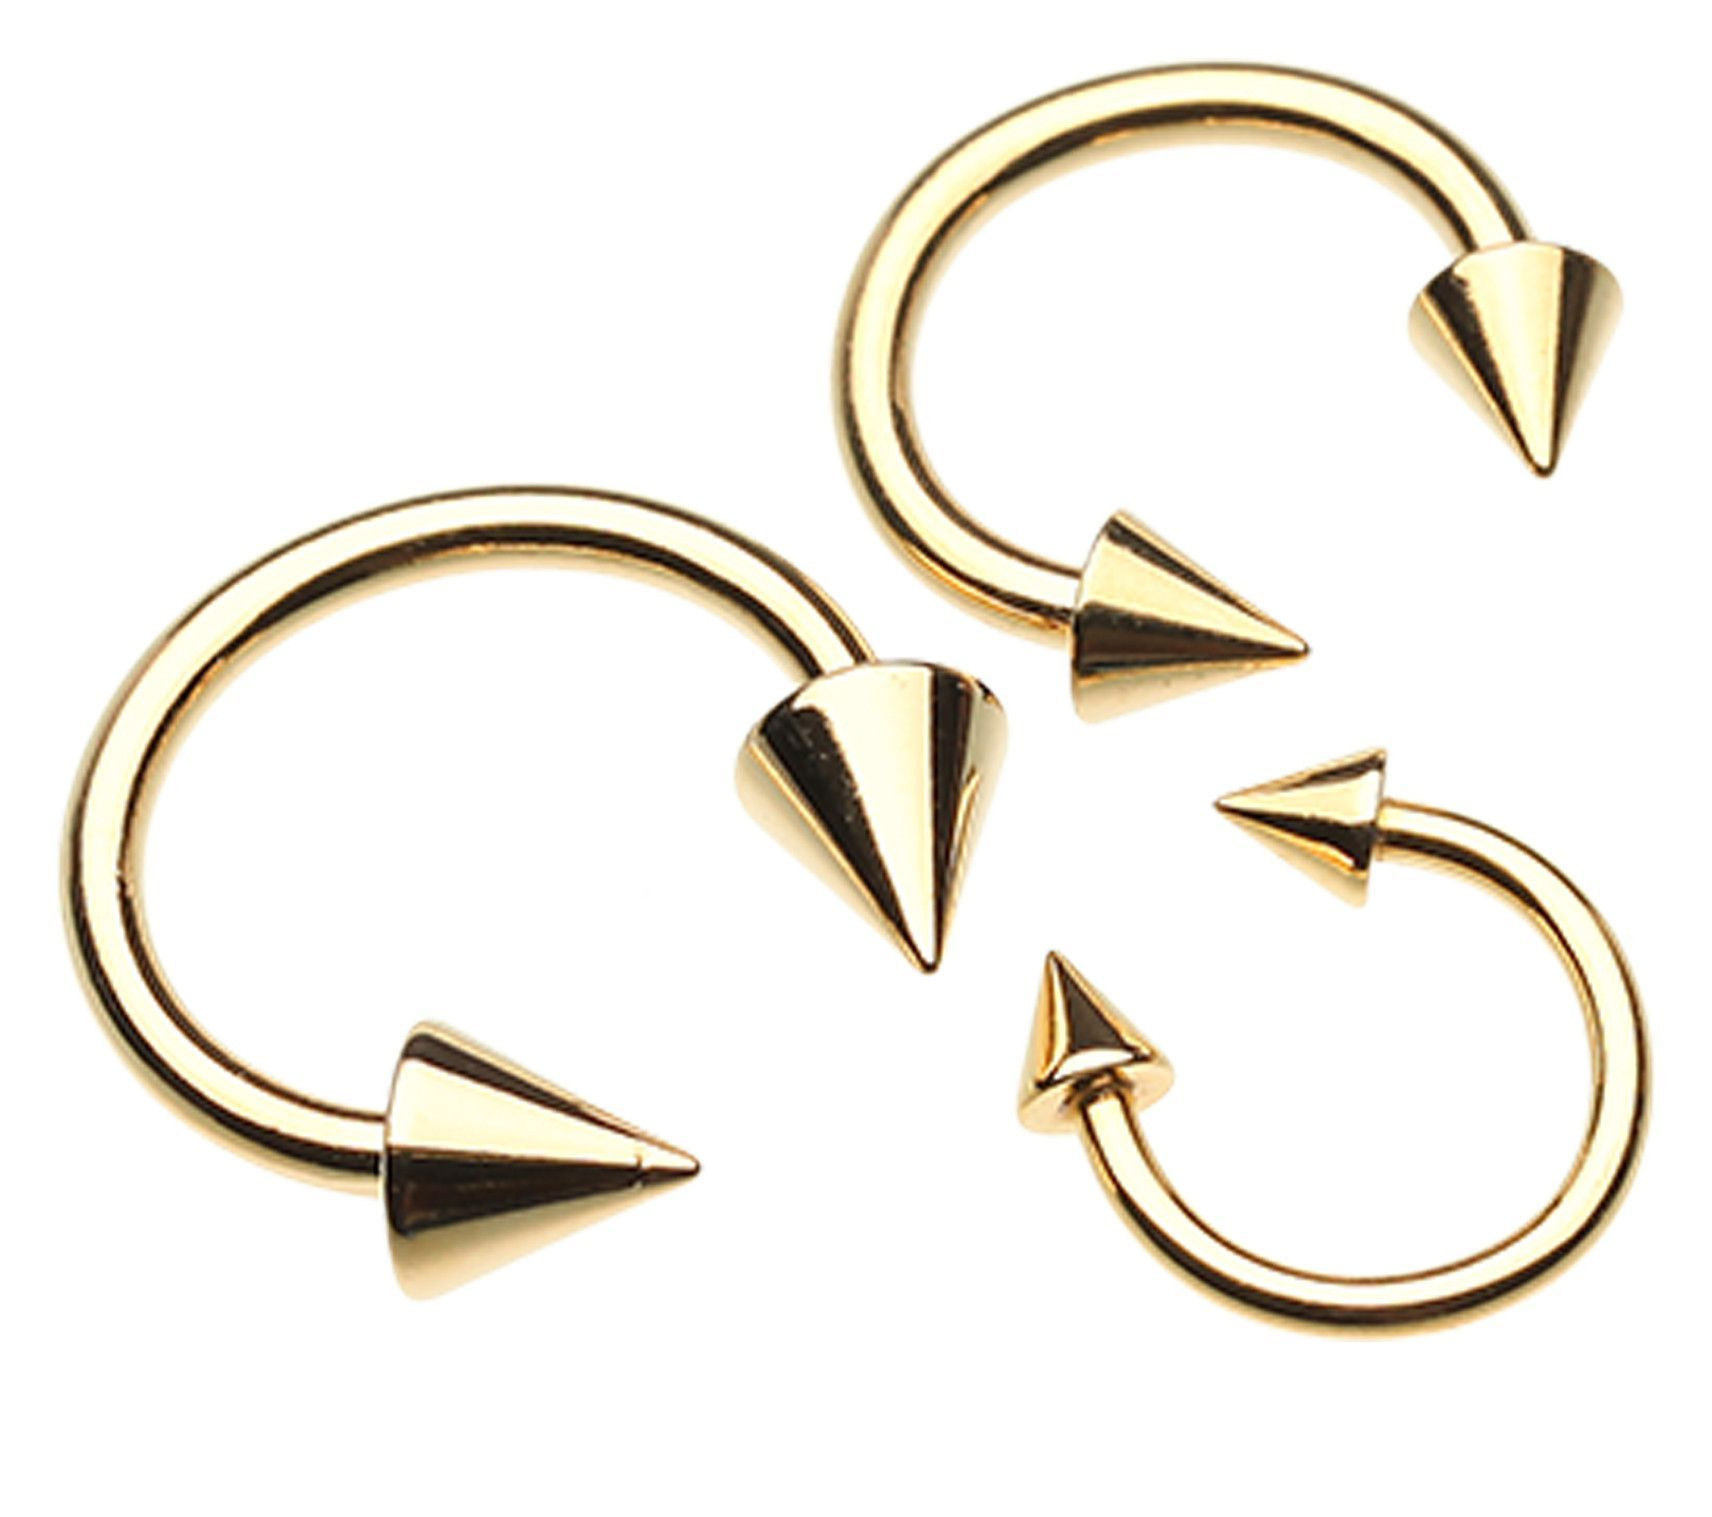 Nose piercing post  Gold Plated Spike Top Horseshoe Circular Barbell  Circular barbell